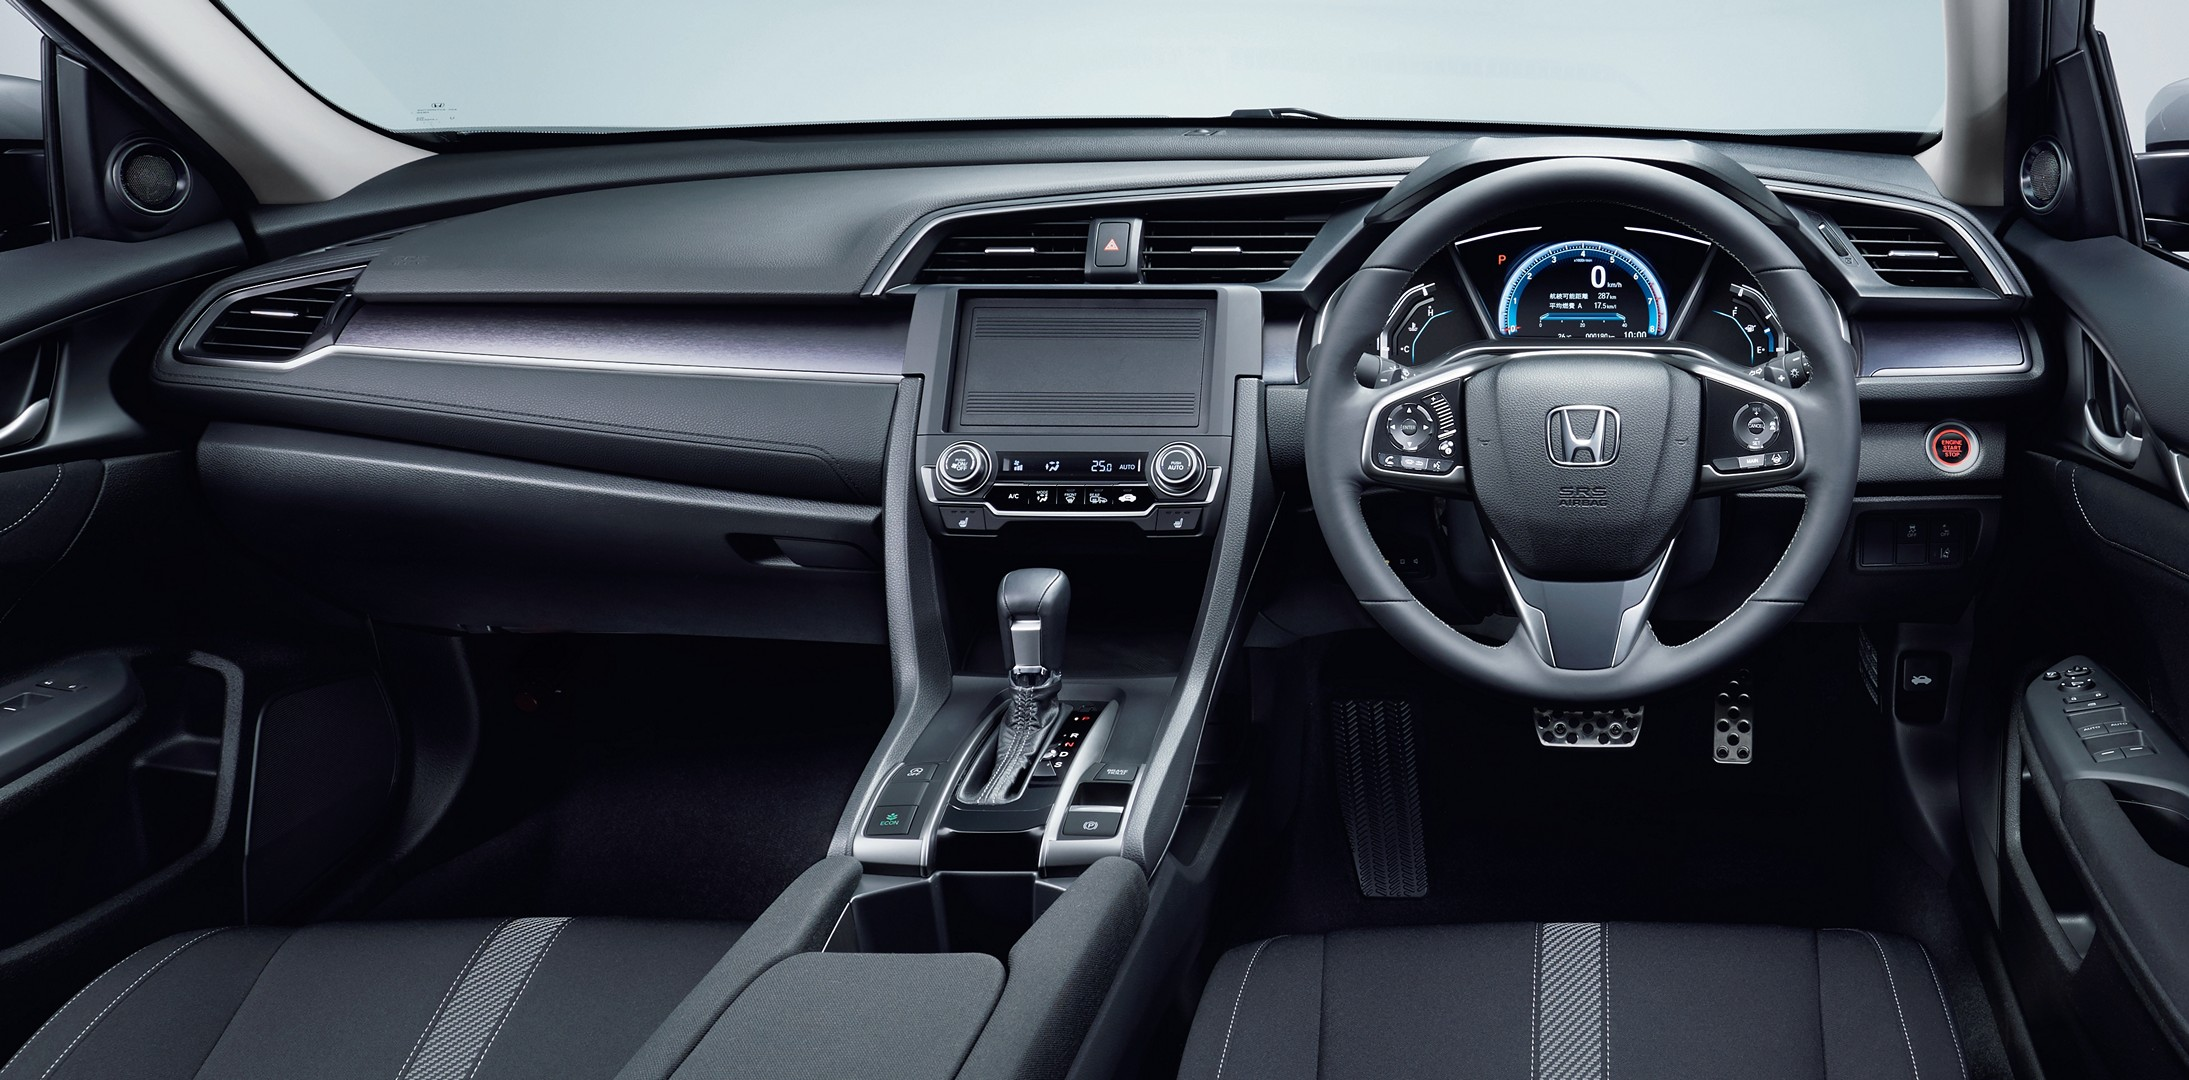 https://s1.cdn.autoevolution.com/images/news/gallery/2017-honda-civic-hatch-and-sedan-launched-in-japan_7.jpg